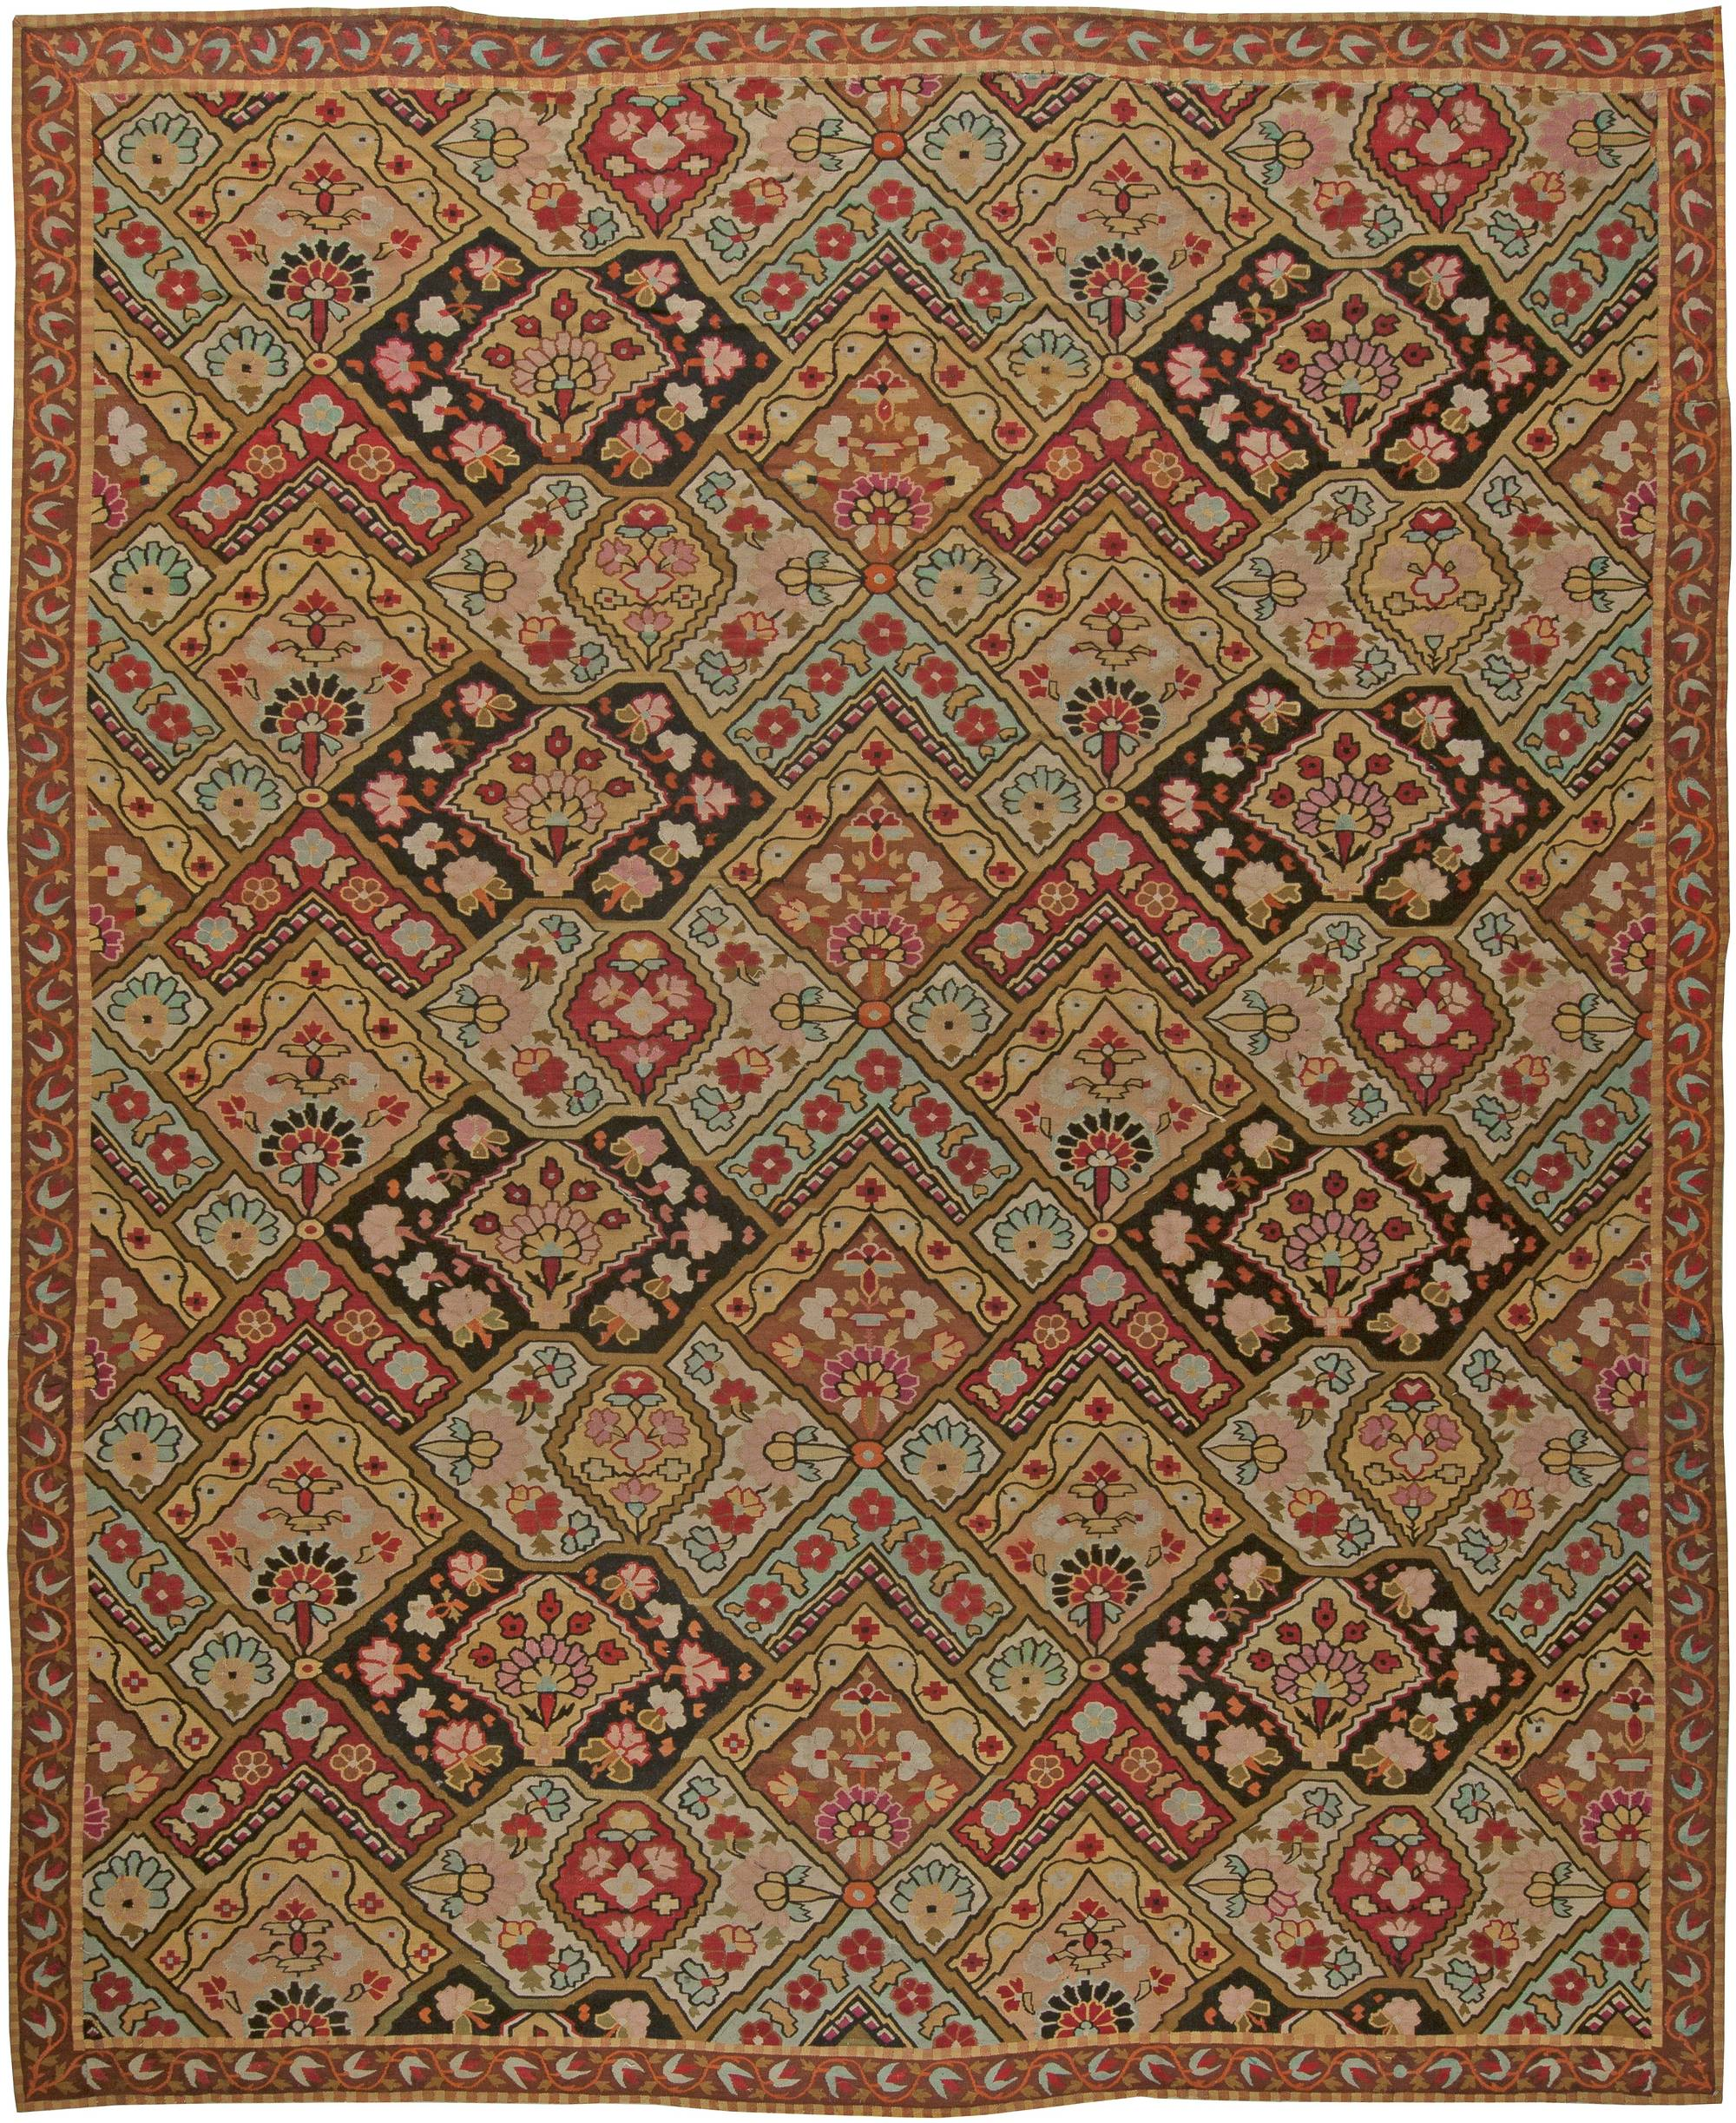 Antique French Aubusson Rug ...